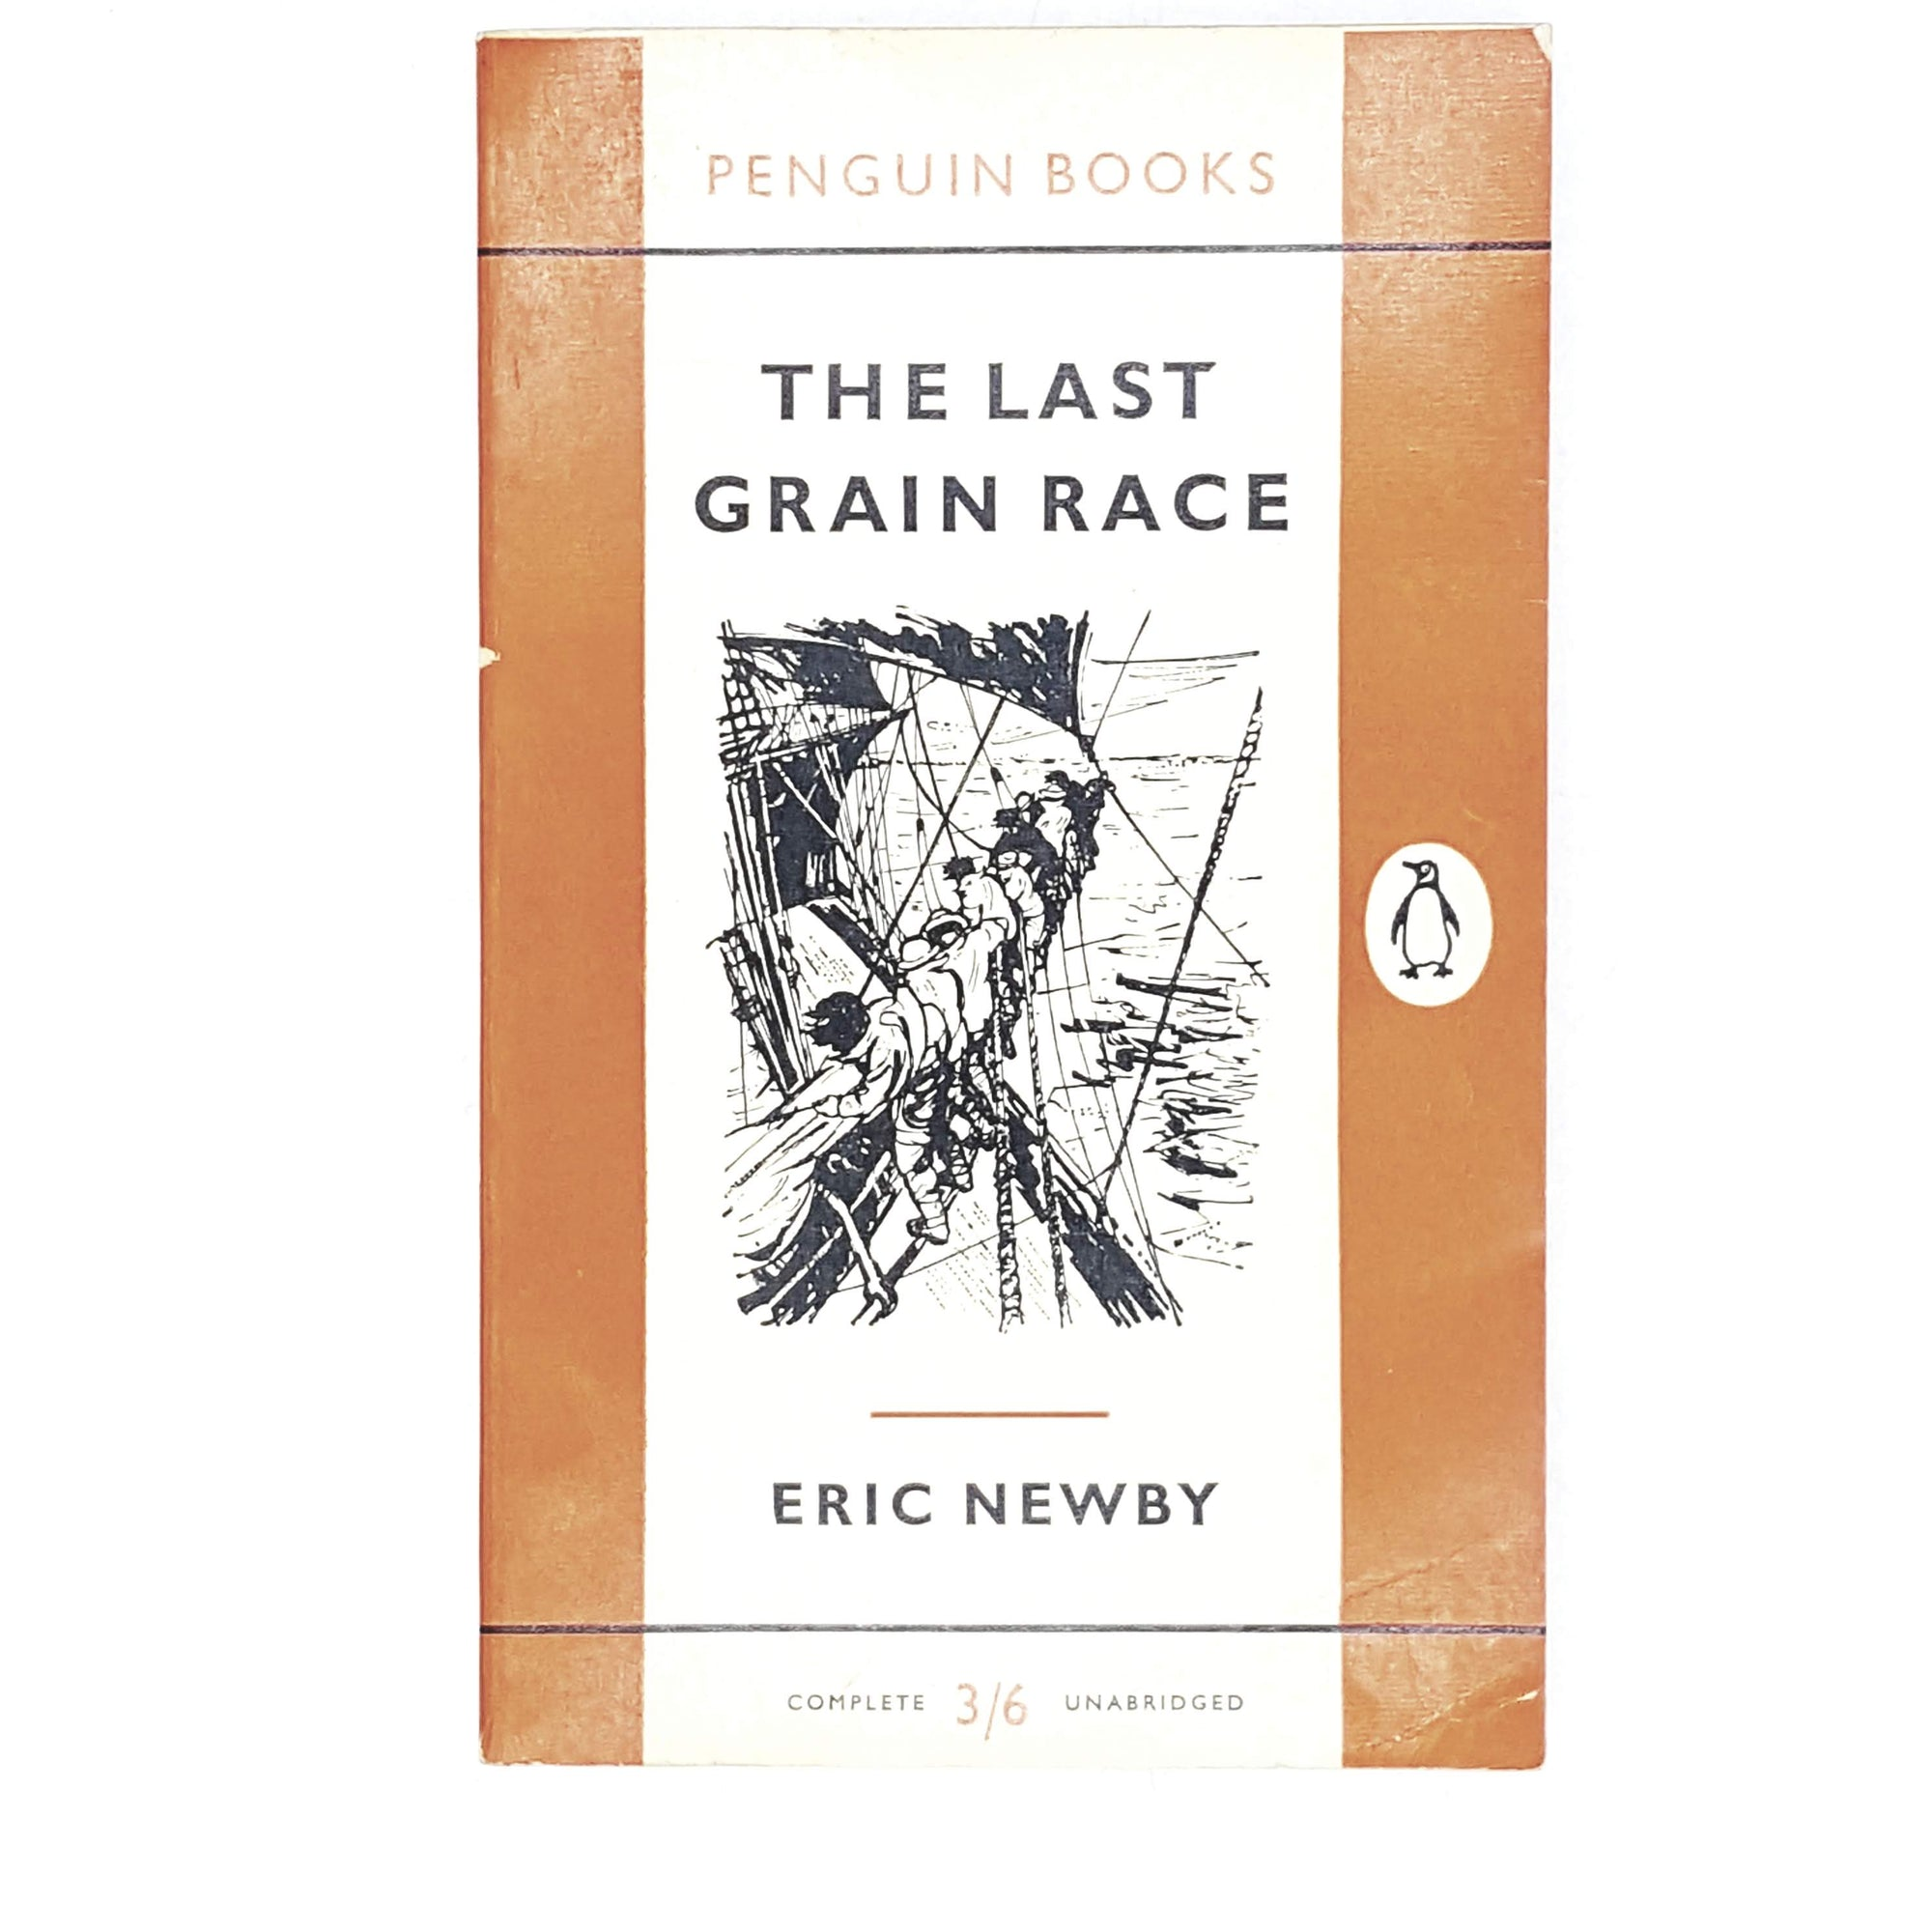 Vintage Penguin The Last Grain Race by Eric Newby 1958